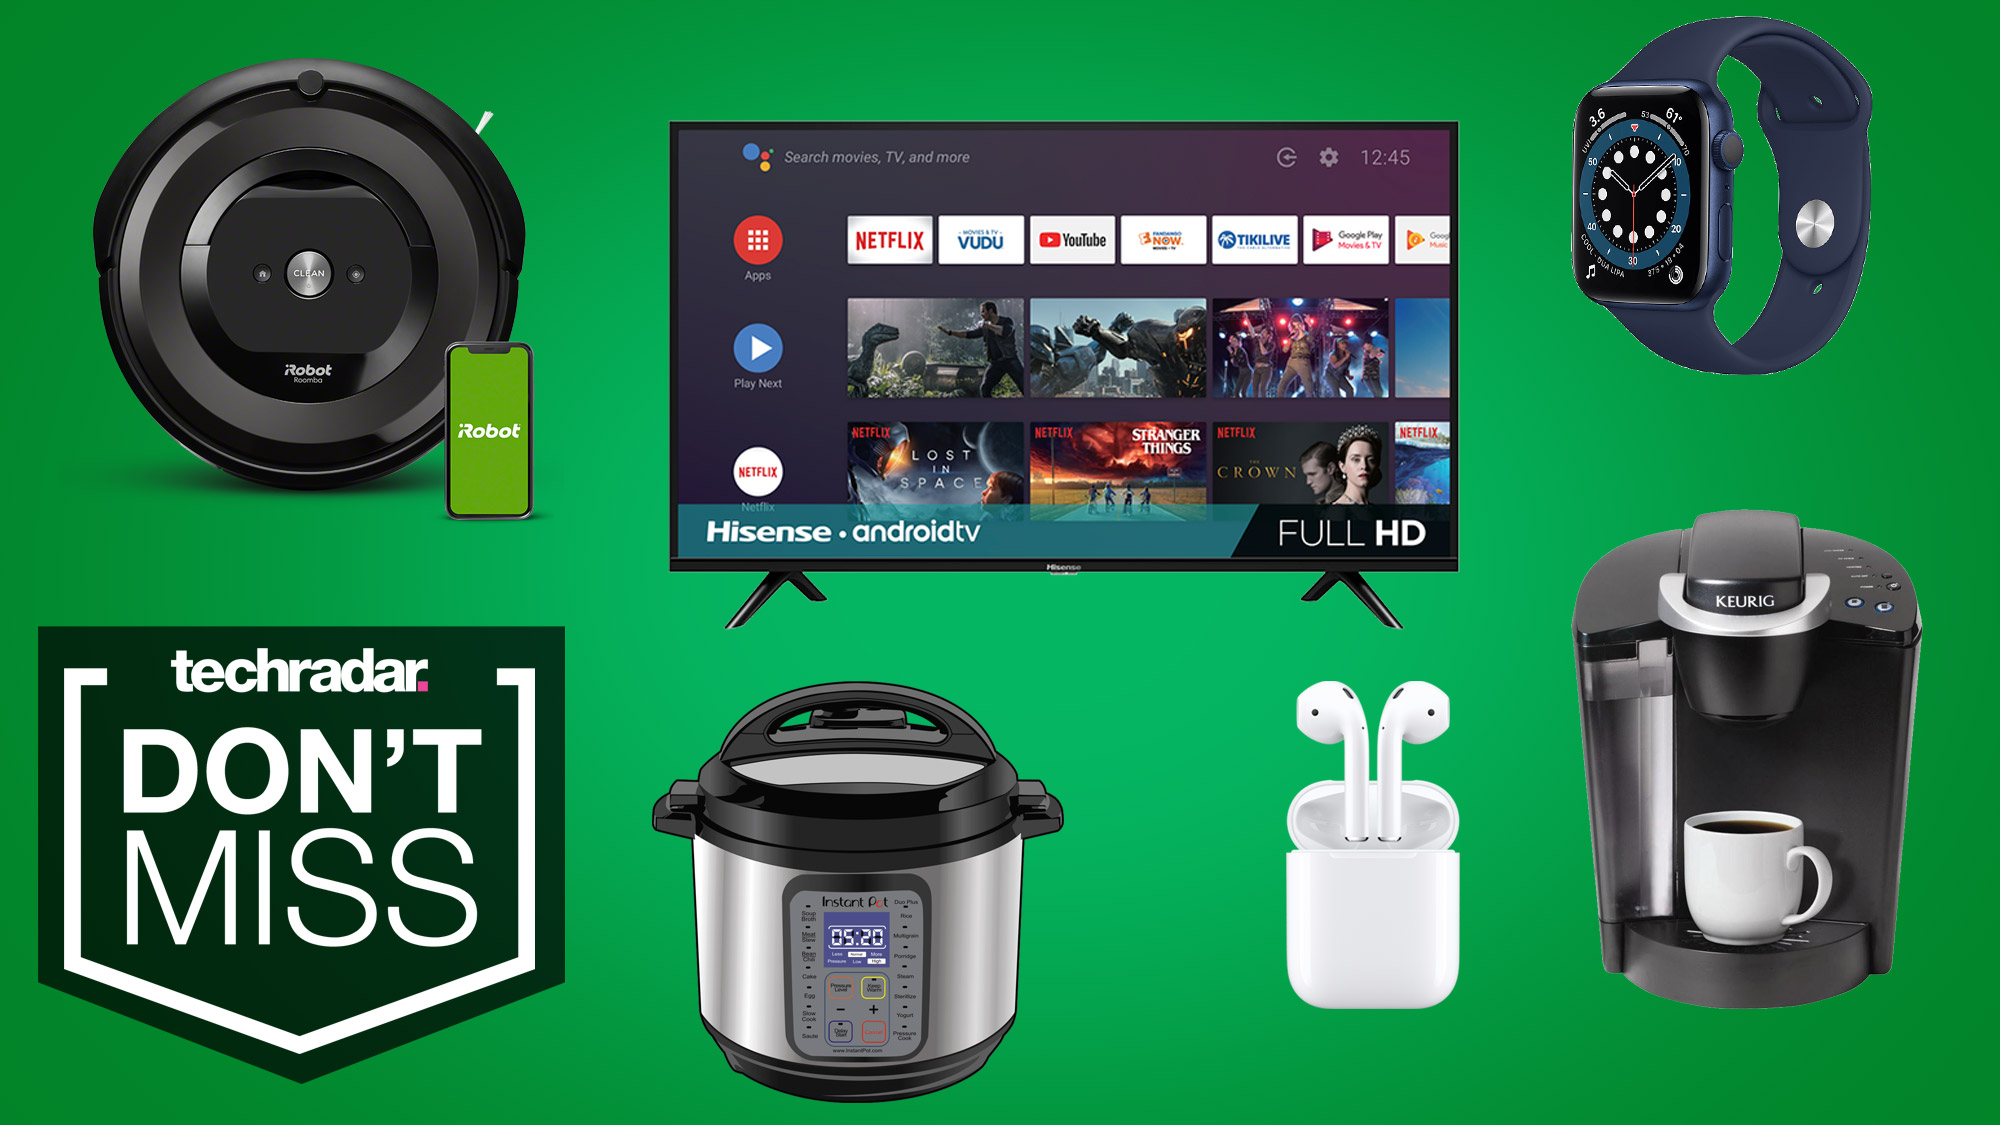 Best Deals Day After Christmas 2021 After Christmas Sales 2020 Year End Deals At Walmart Best Buy Amazon And More Techradar